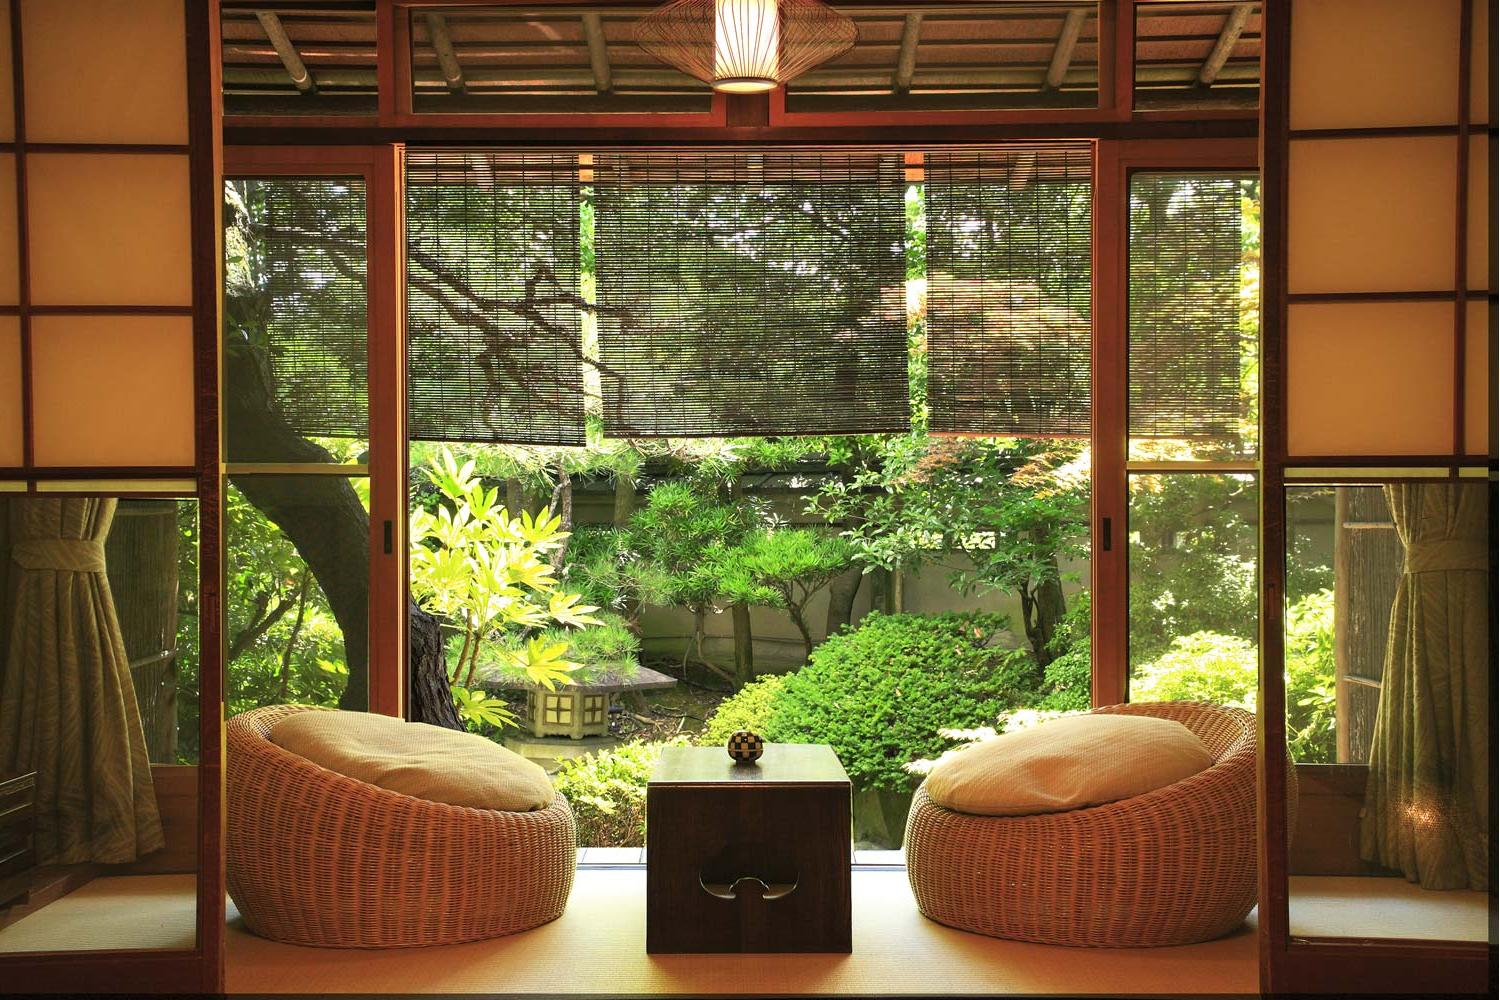 Modern japanese living room design 1 renovation ideas for Zen style living room design